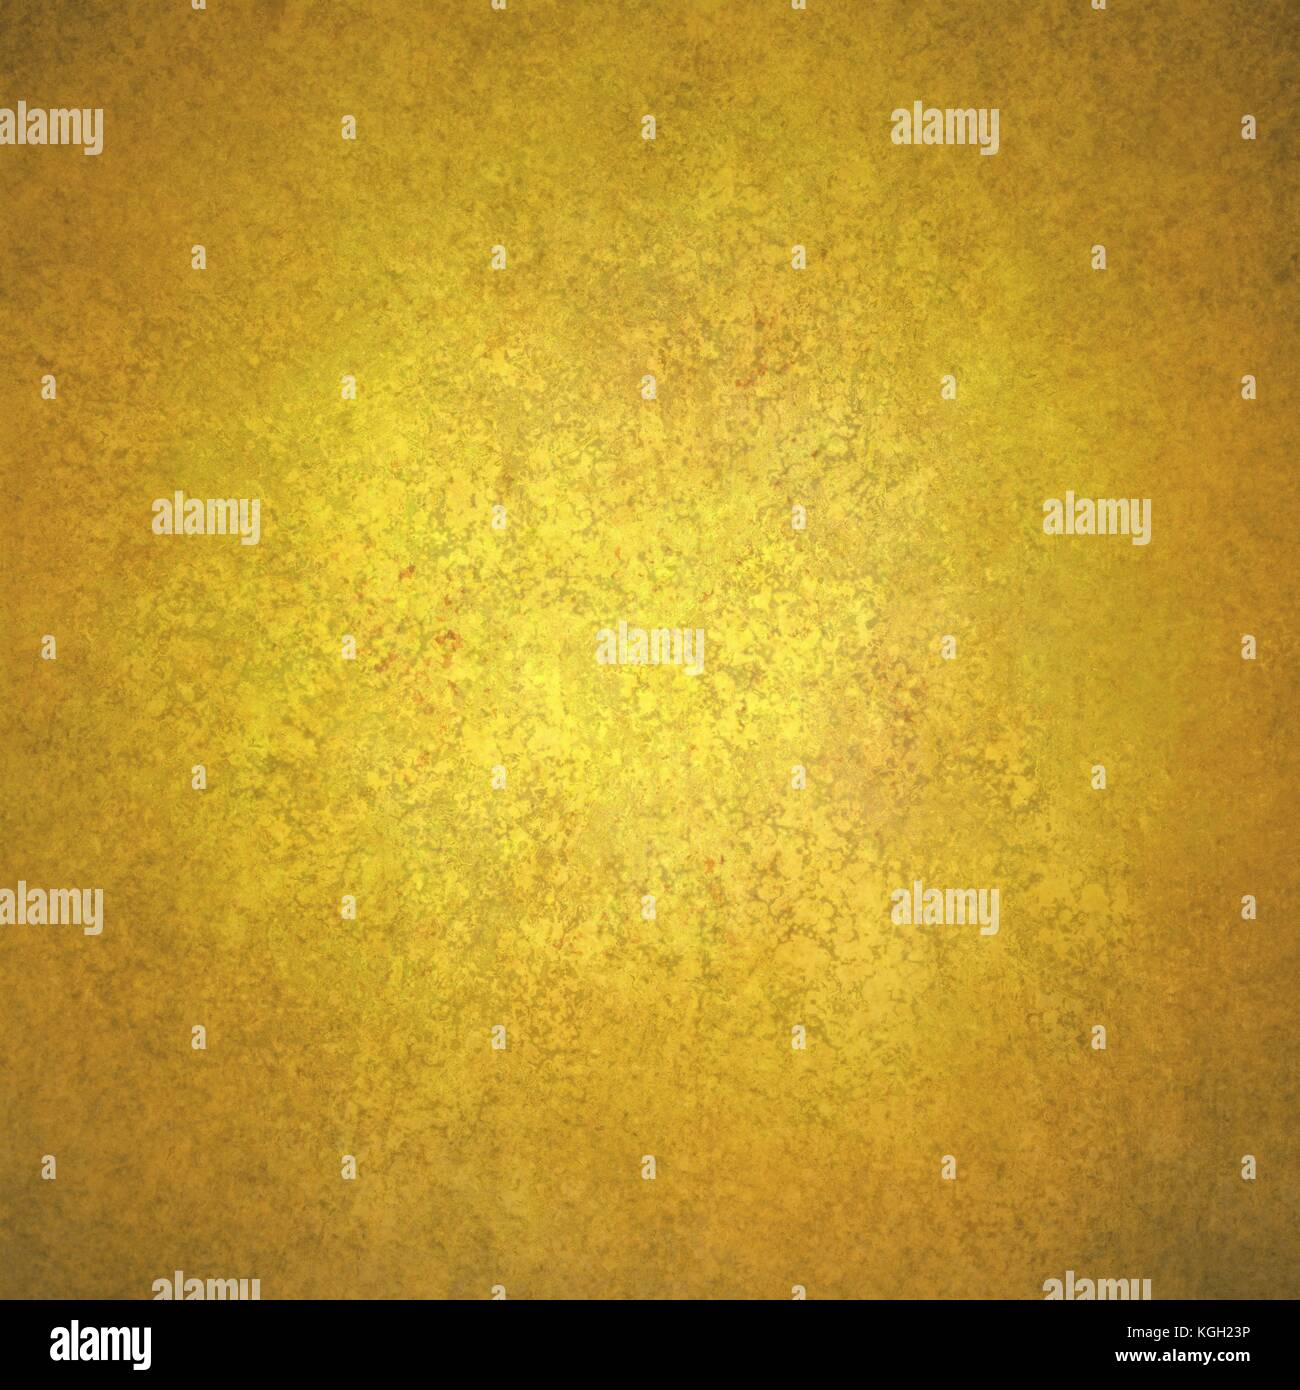 elegant gold background texture paper, faint rustic grunge border ...